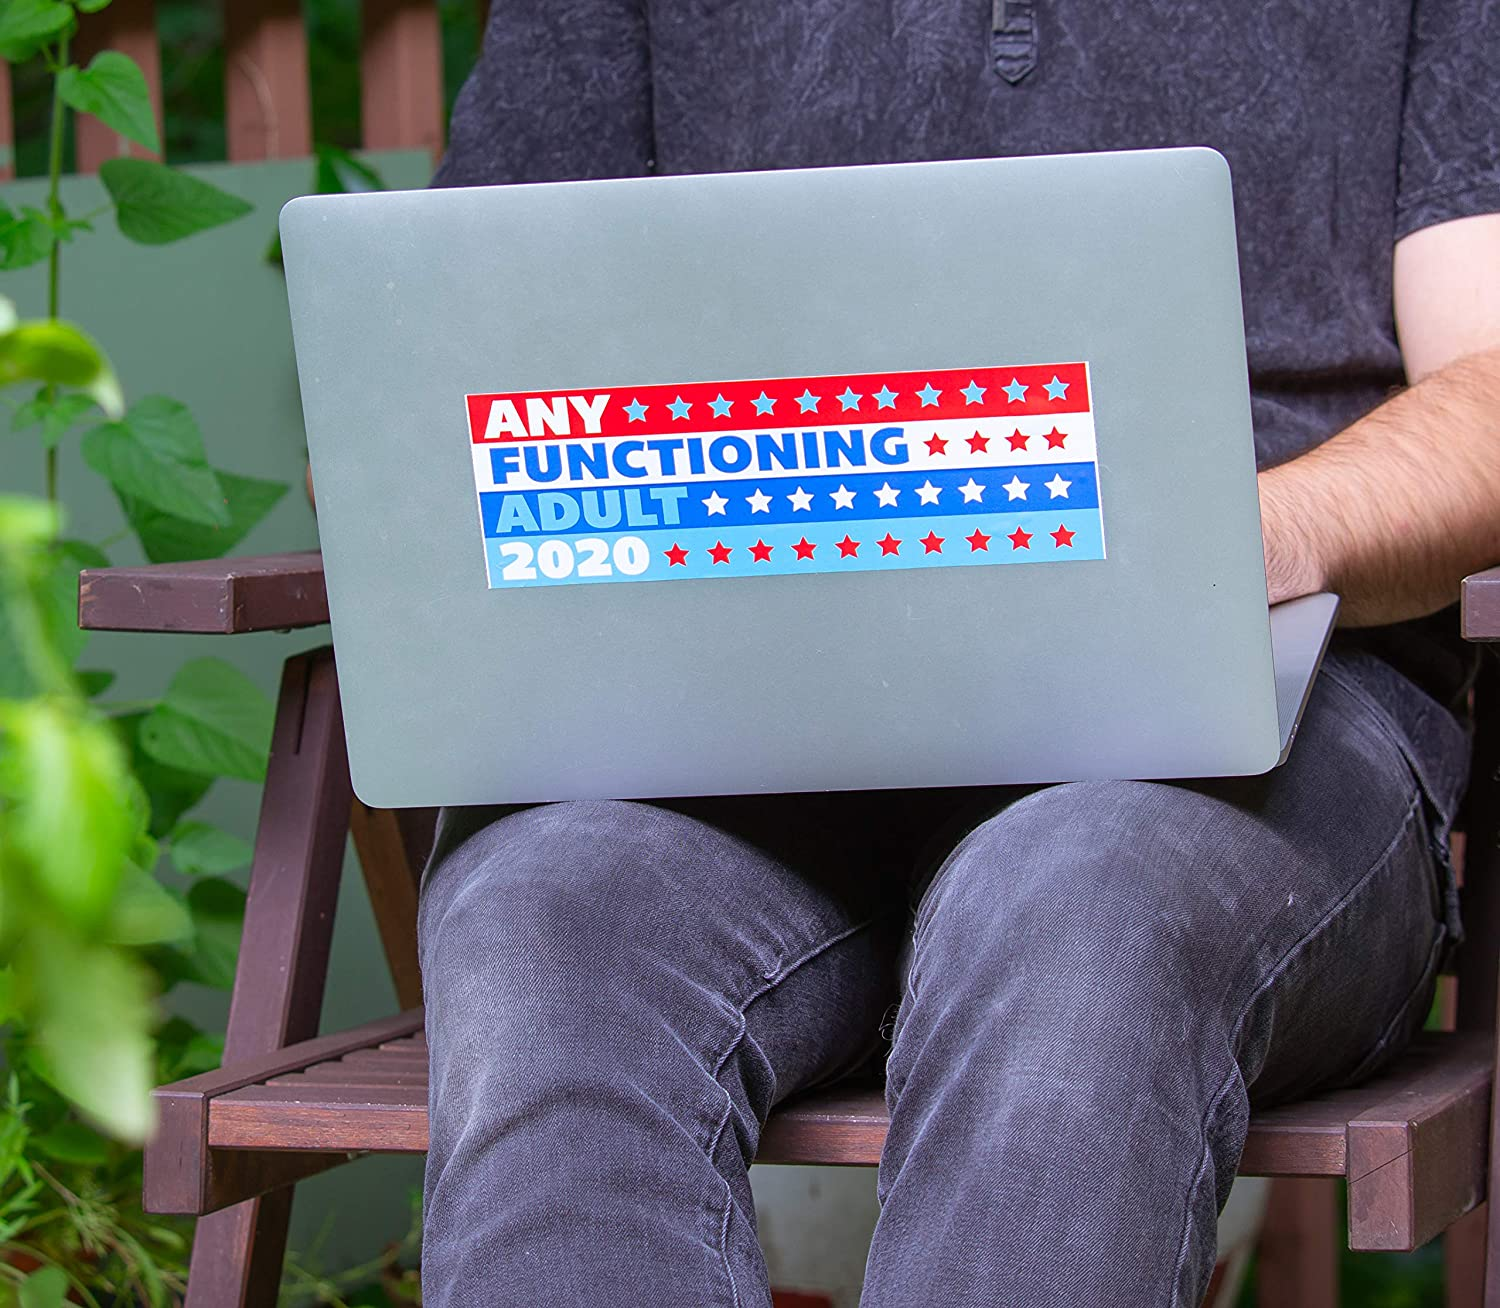 Gift to Anti-Trump friends who want anybody to win.This election 4-Pack of Any Functioning Adult 2020 Funny Car Bumper Stickers use as a window sign to encourage votes for literally anyone else.